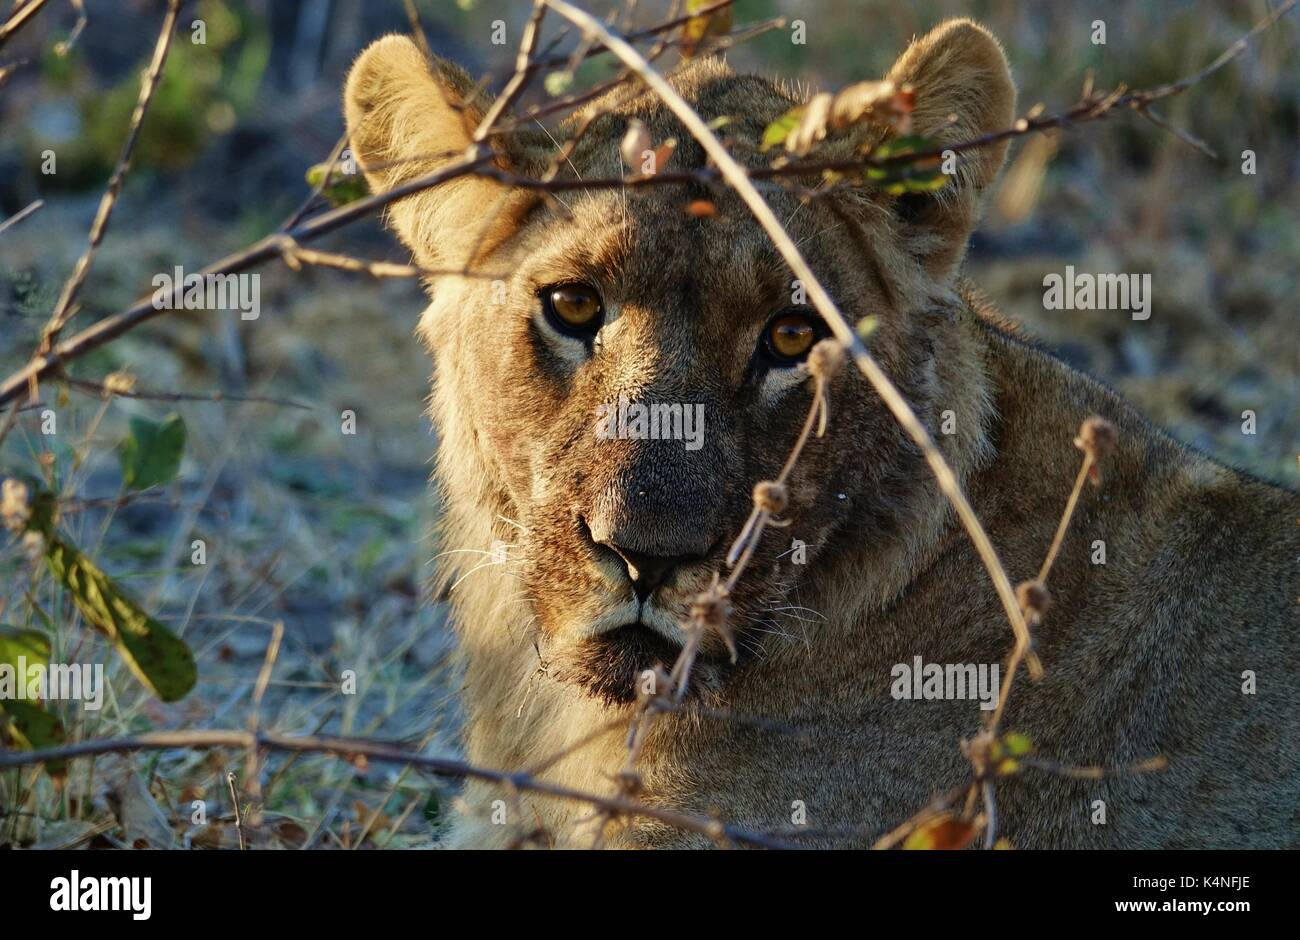 Lioness face watching - Stock Image